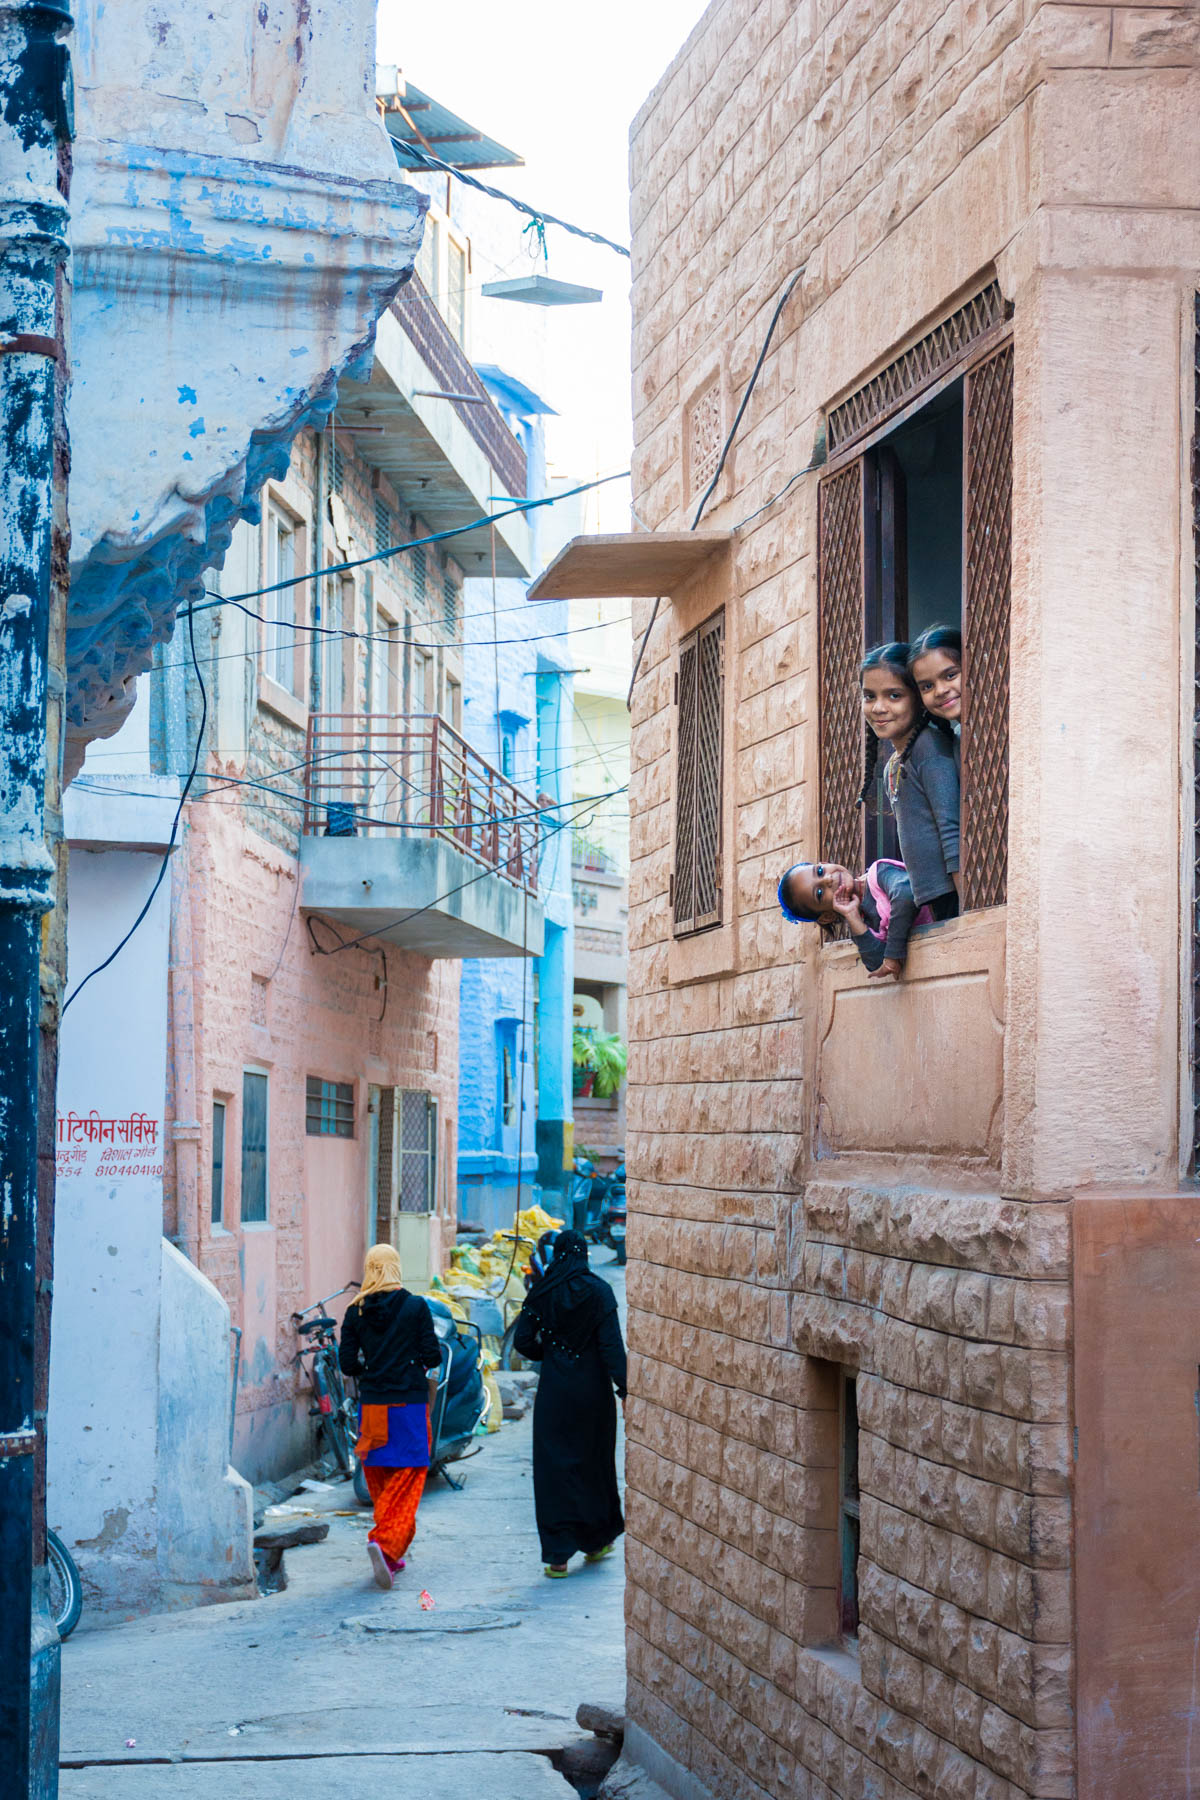 Playful girls in Jodhpur, India